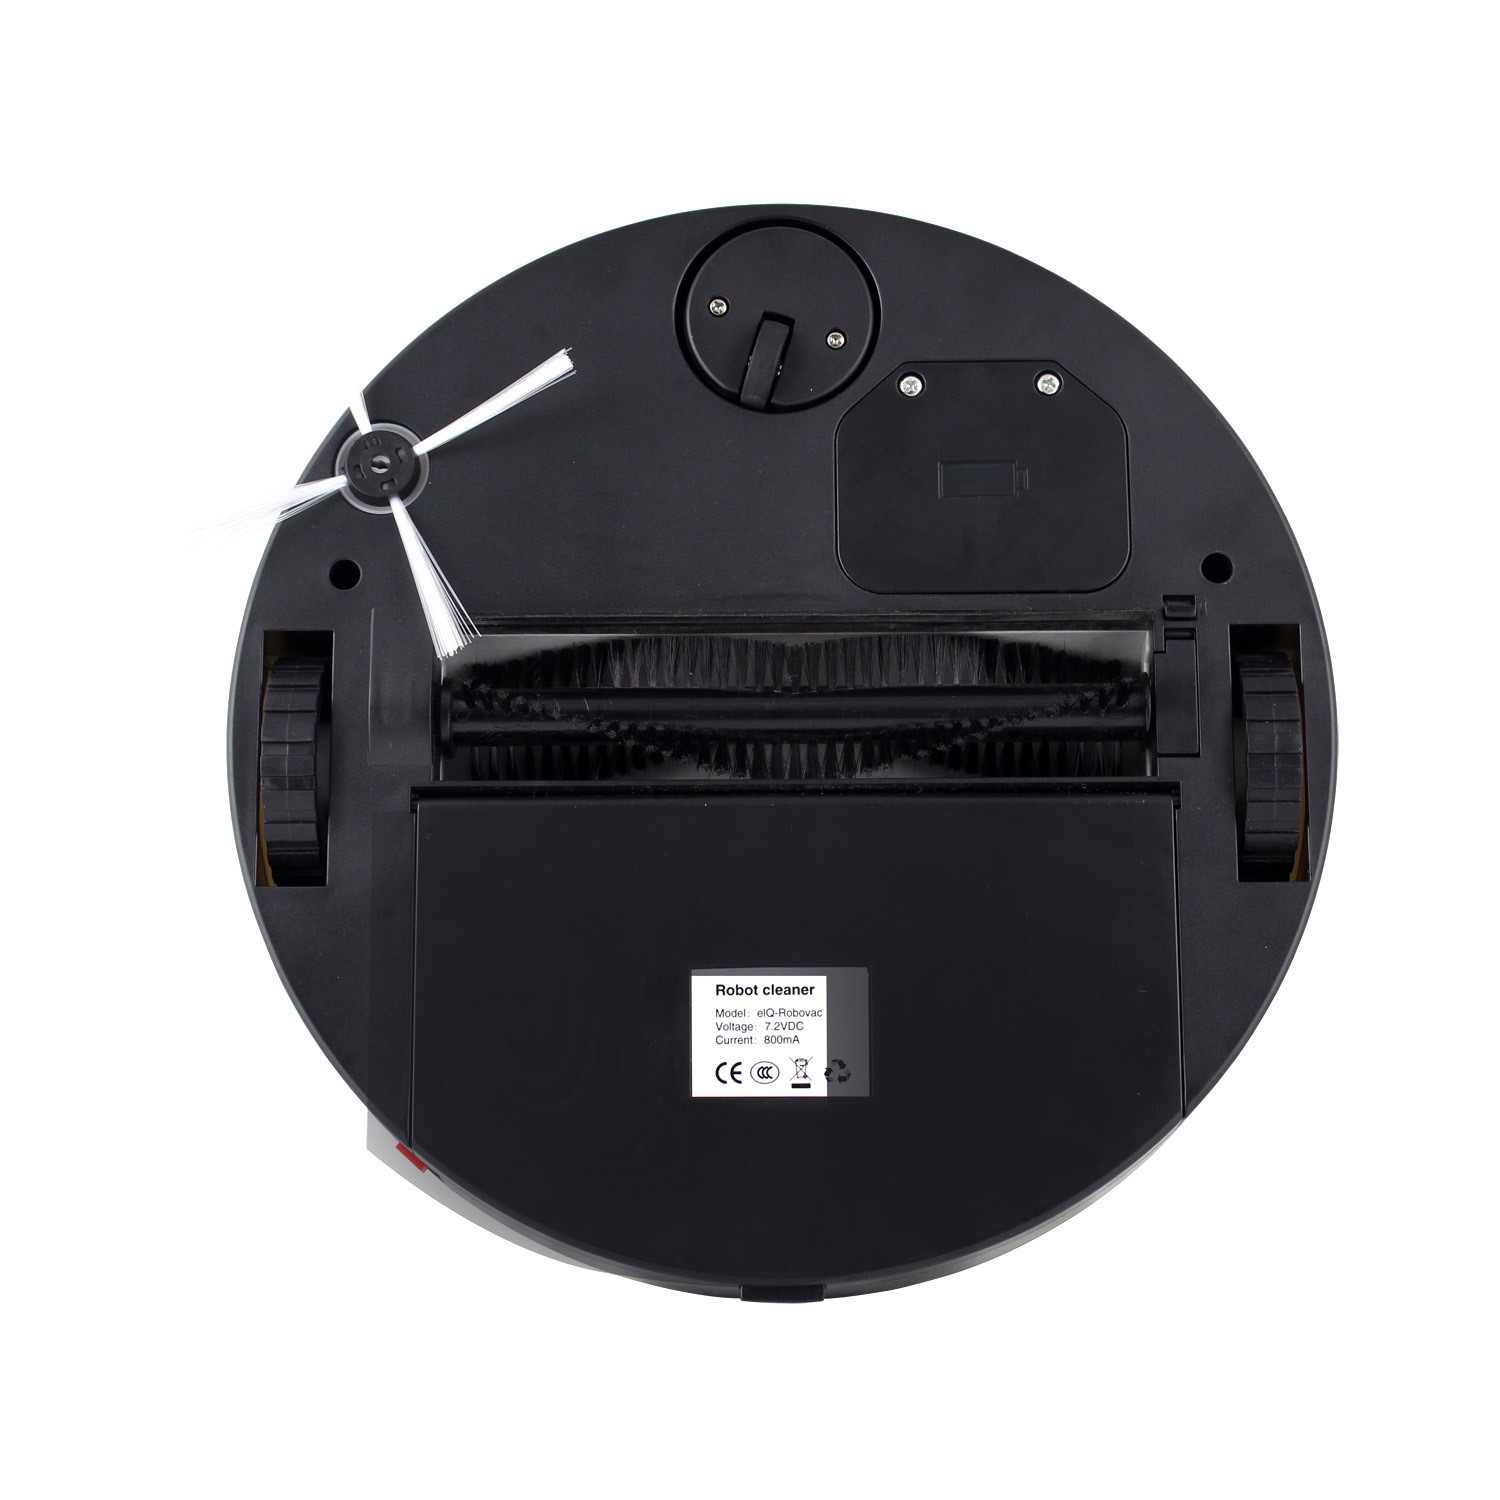 electriq eiqrobovac robotic vacuum cleaner for carpet and hard floors - Robotic Vacuum Cleaner